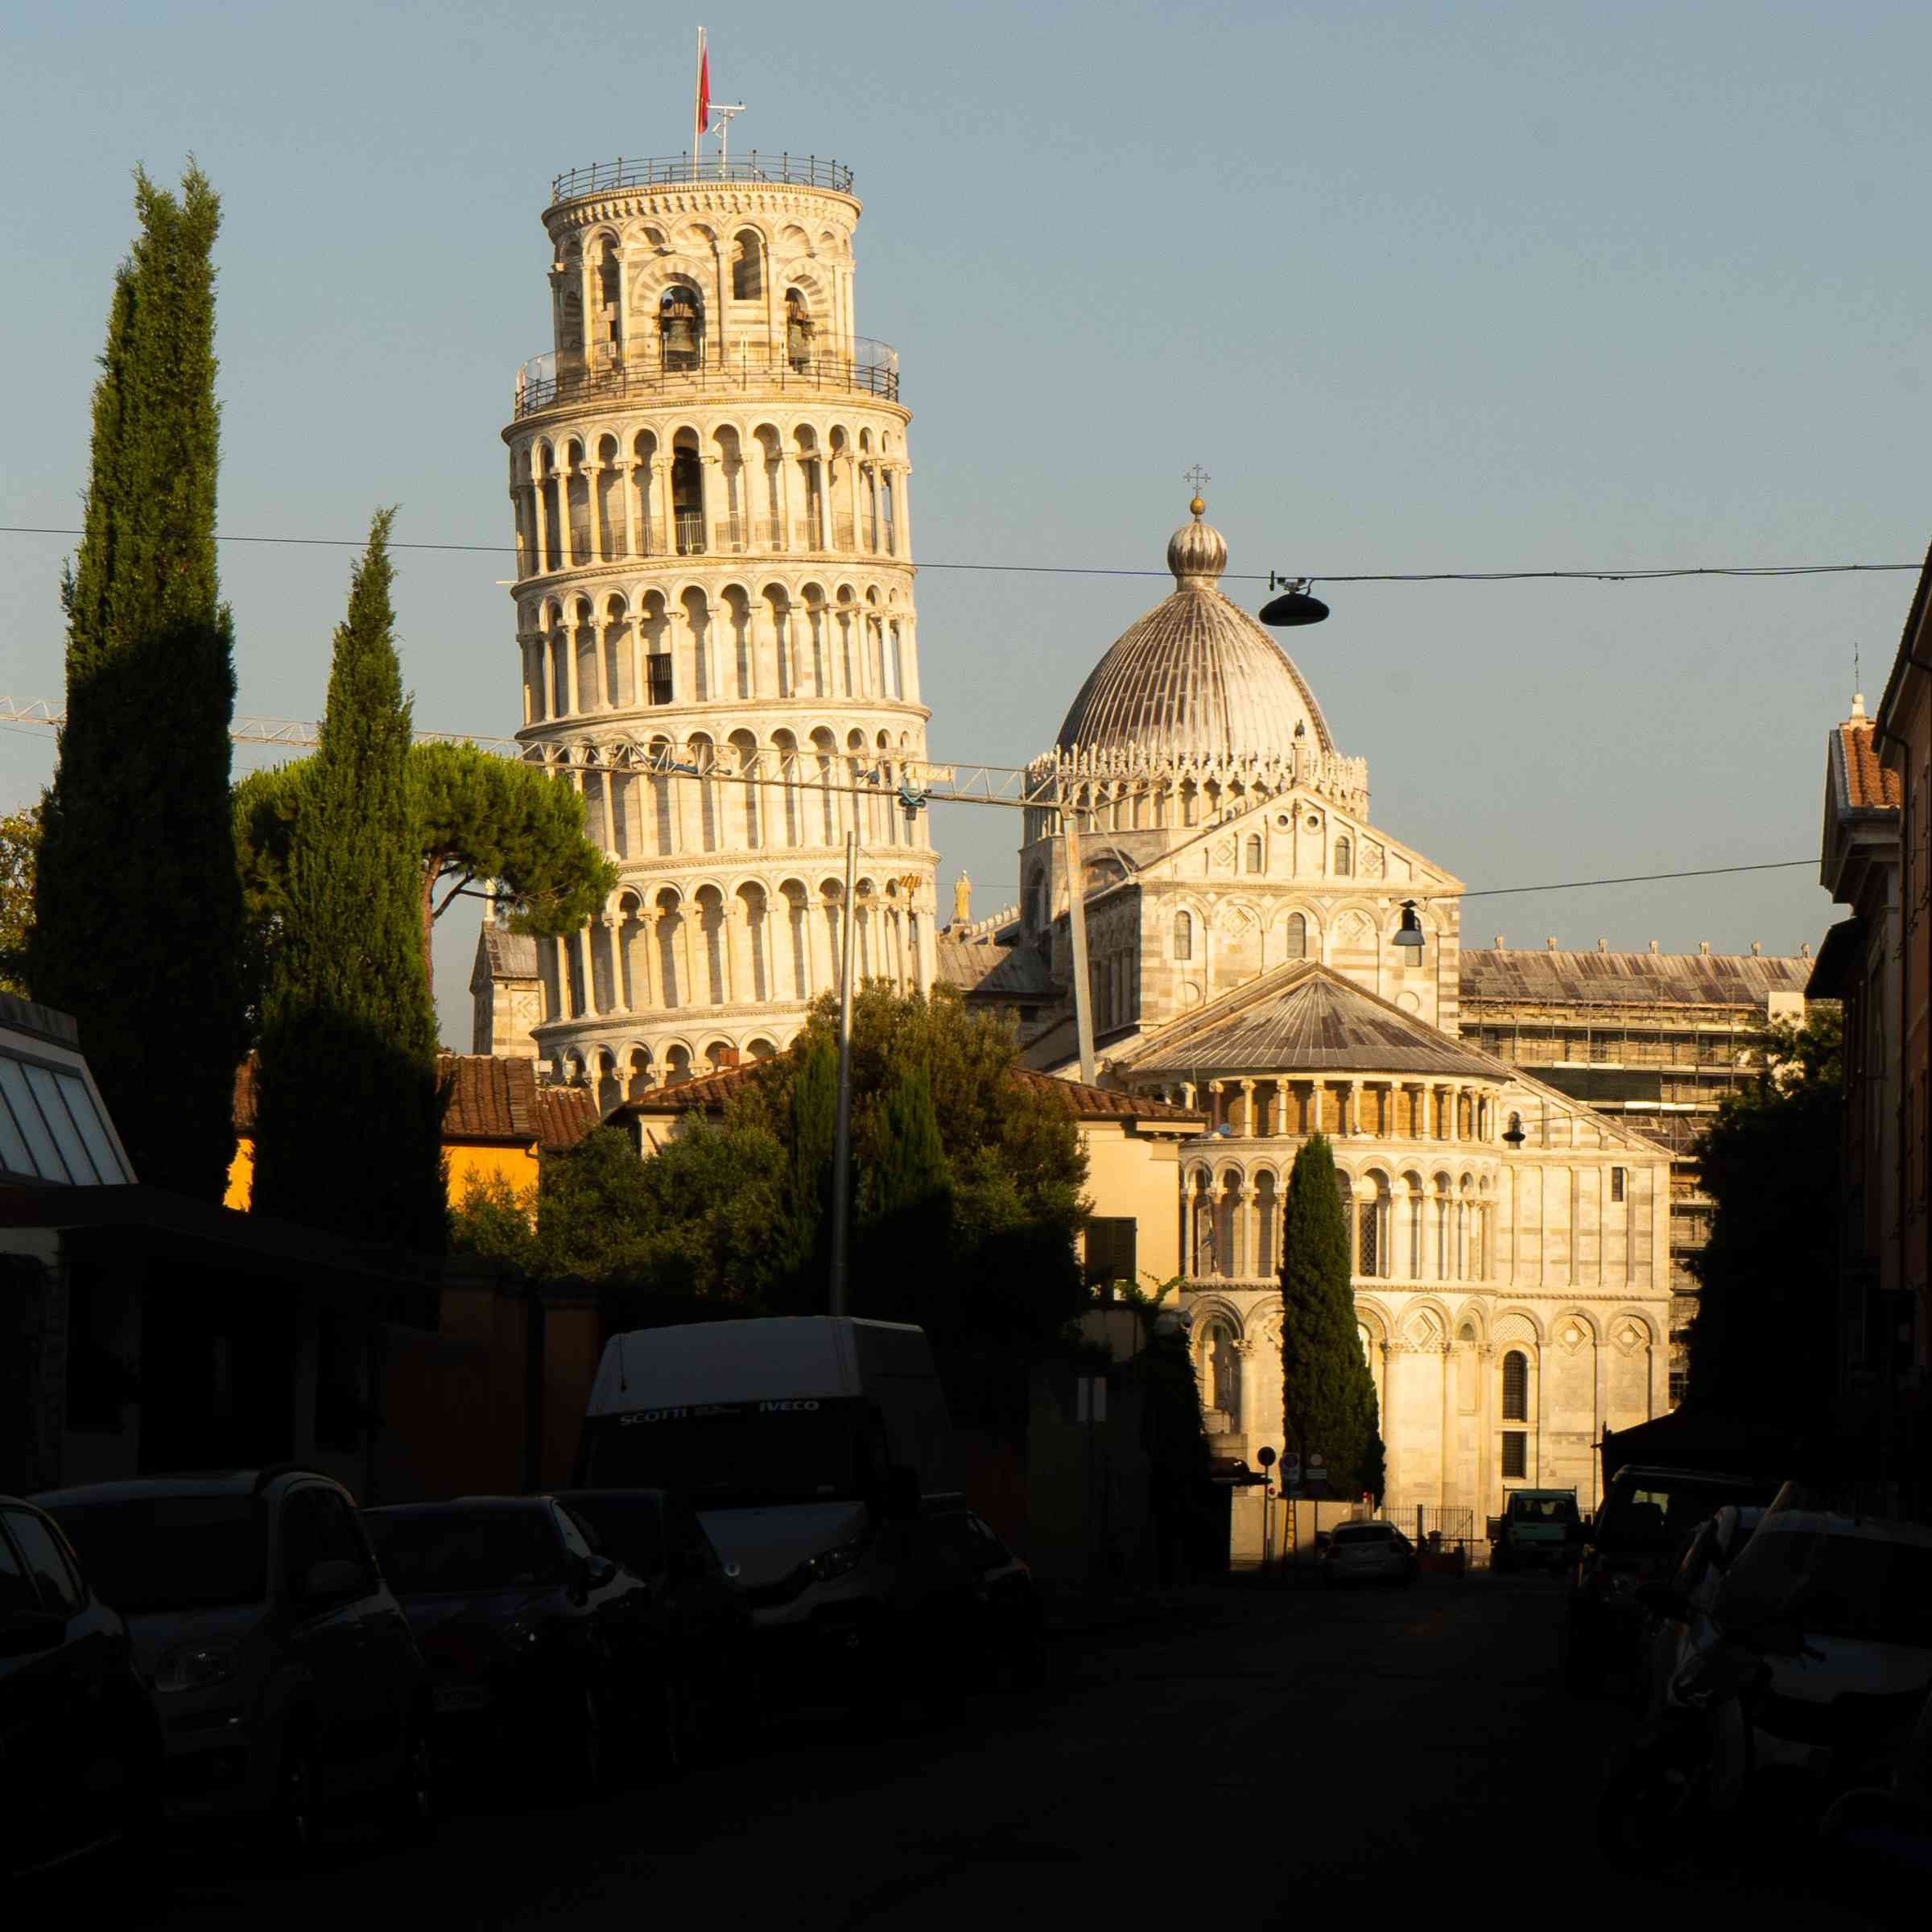 The leaning tower of Pisa during golden hour